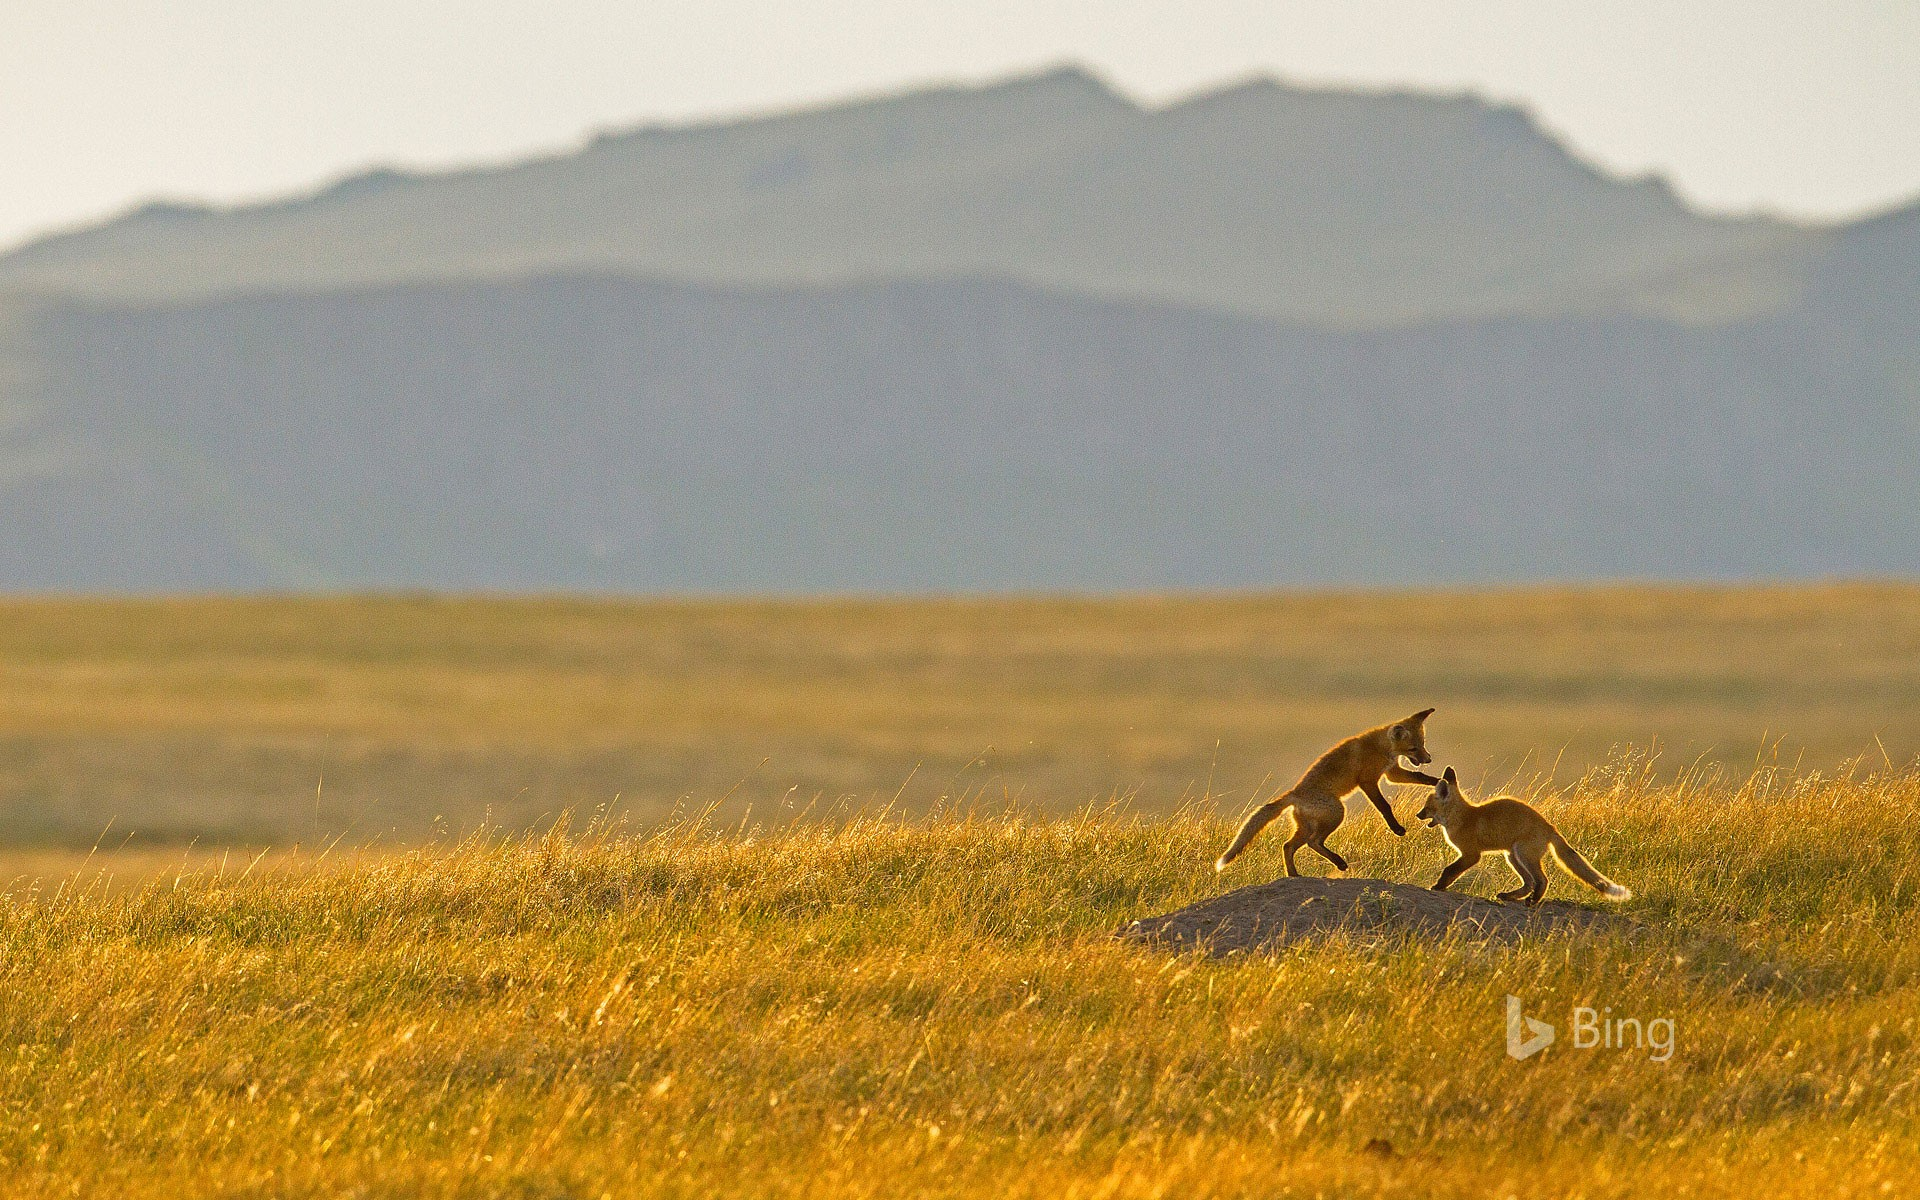 Fox kits playing in the Rocky Mountain foothills near Cascade, Montana